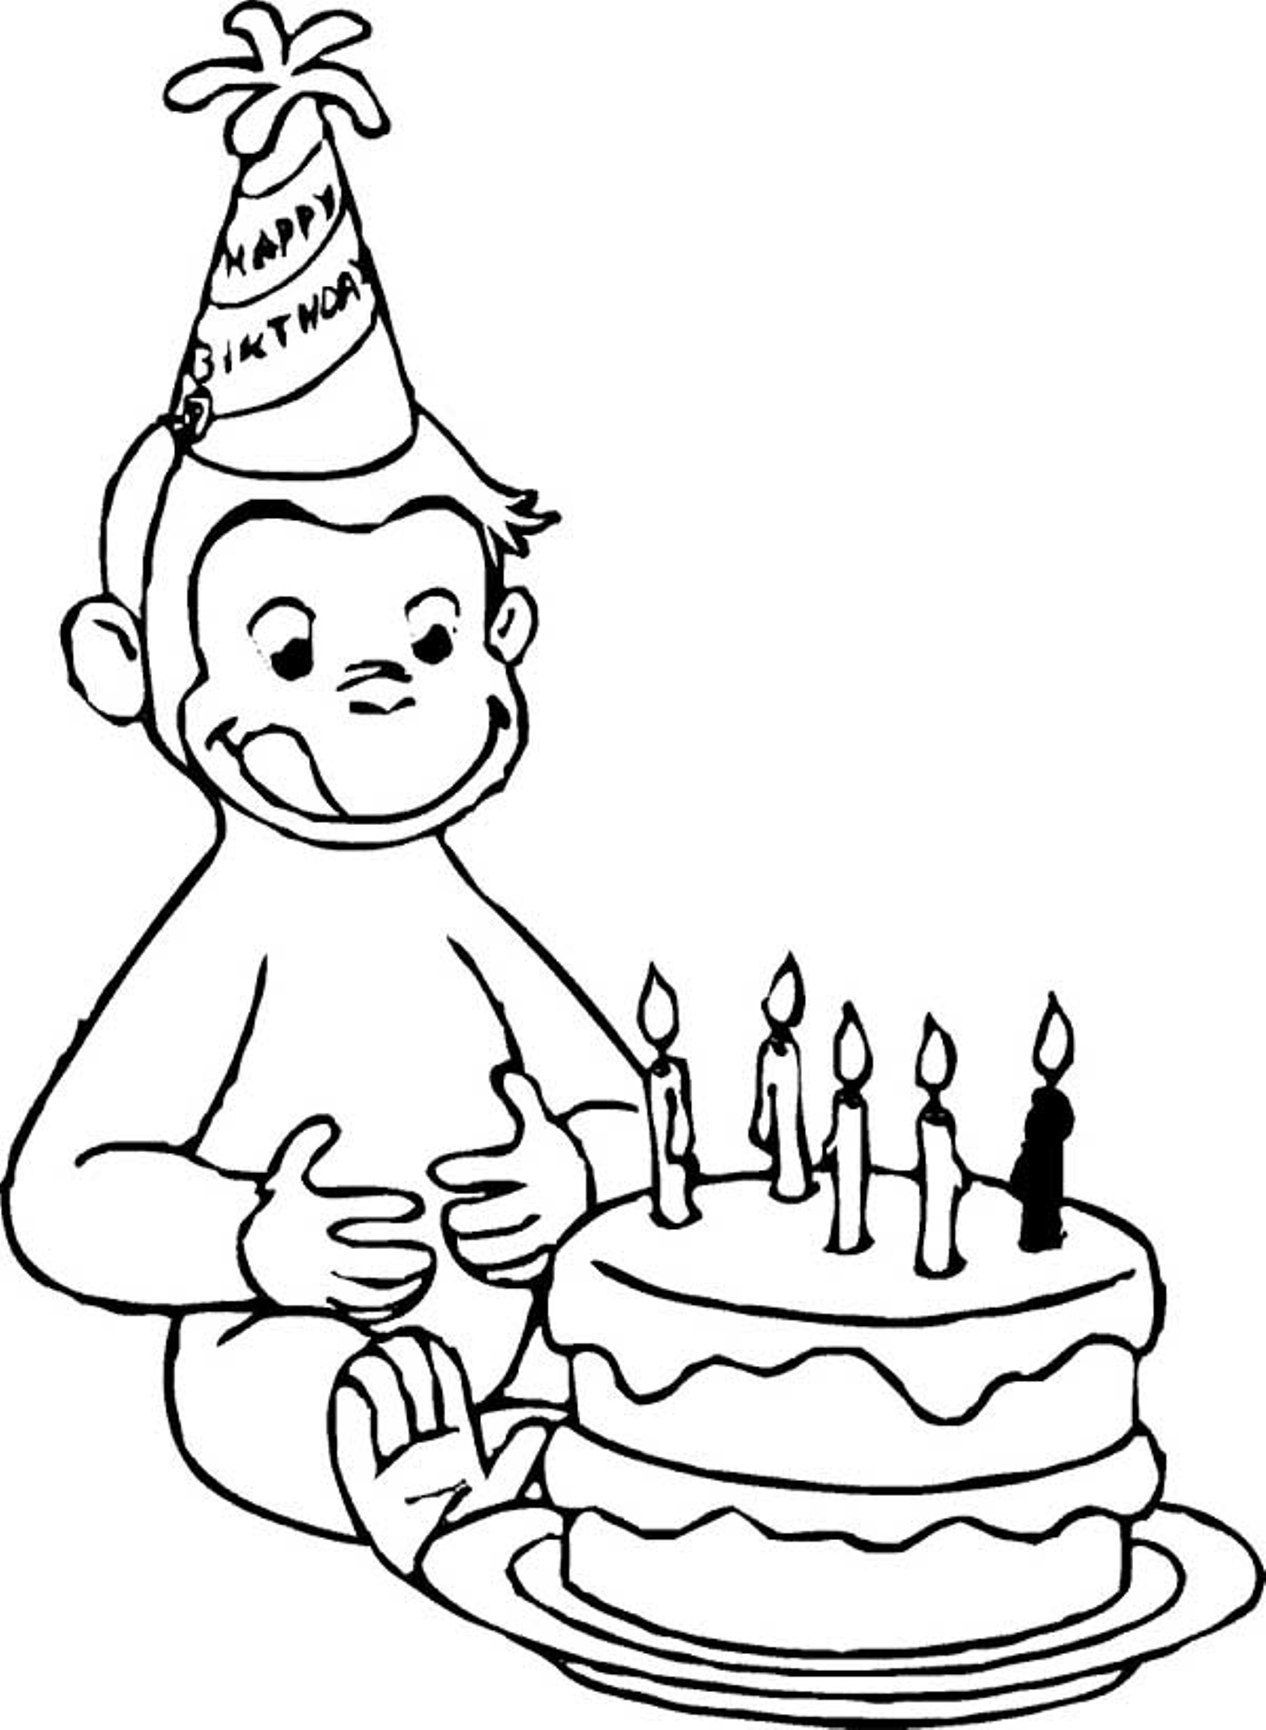 Download Or Print This Amazing Coloring Page Download Birthday